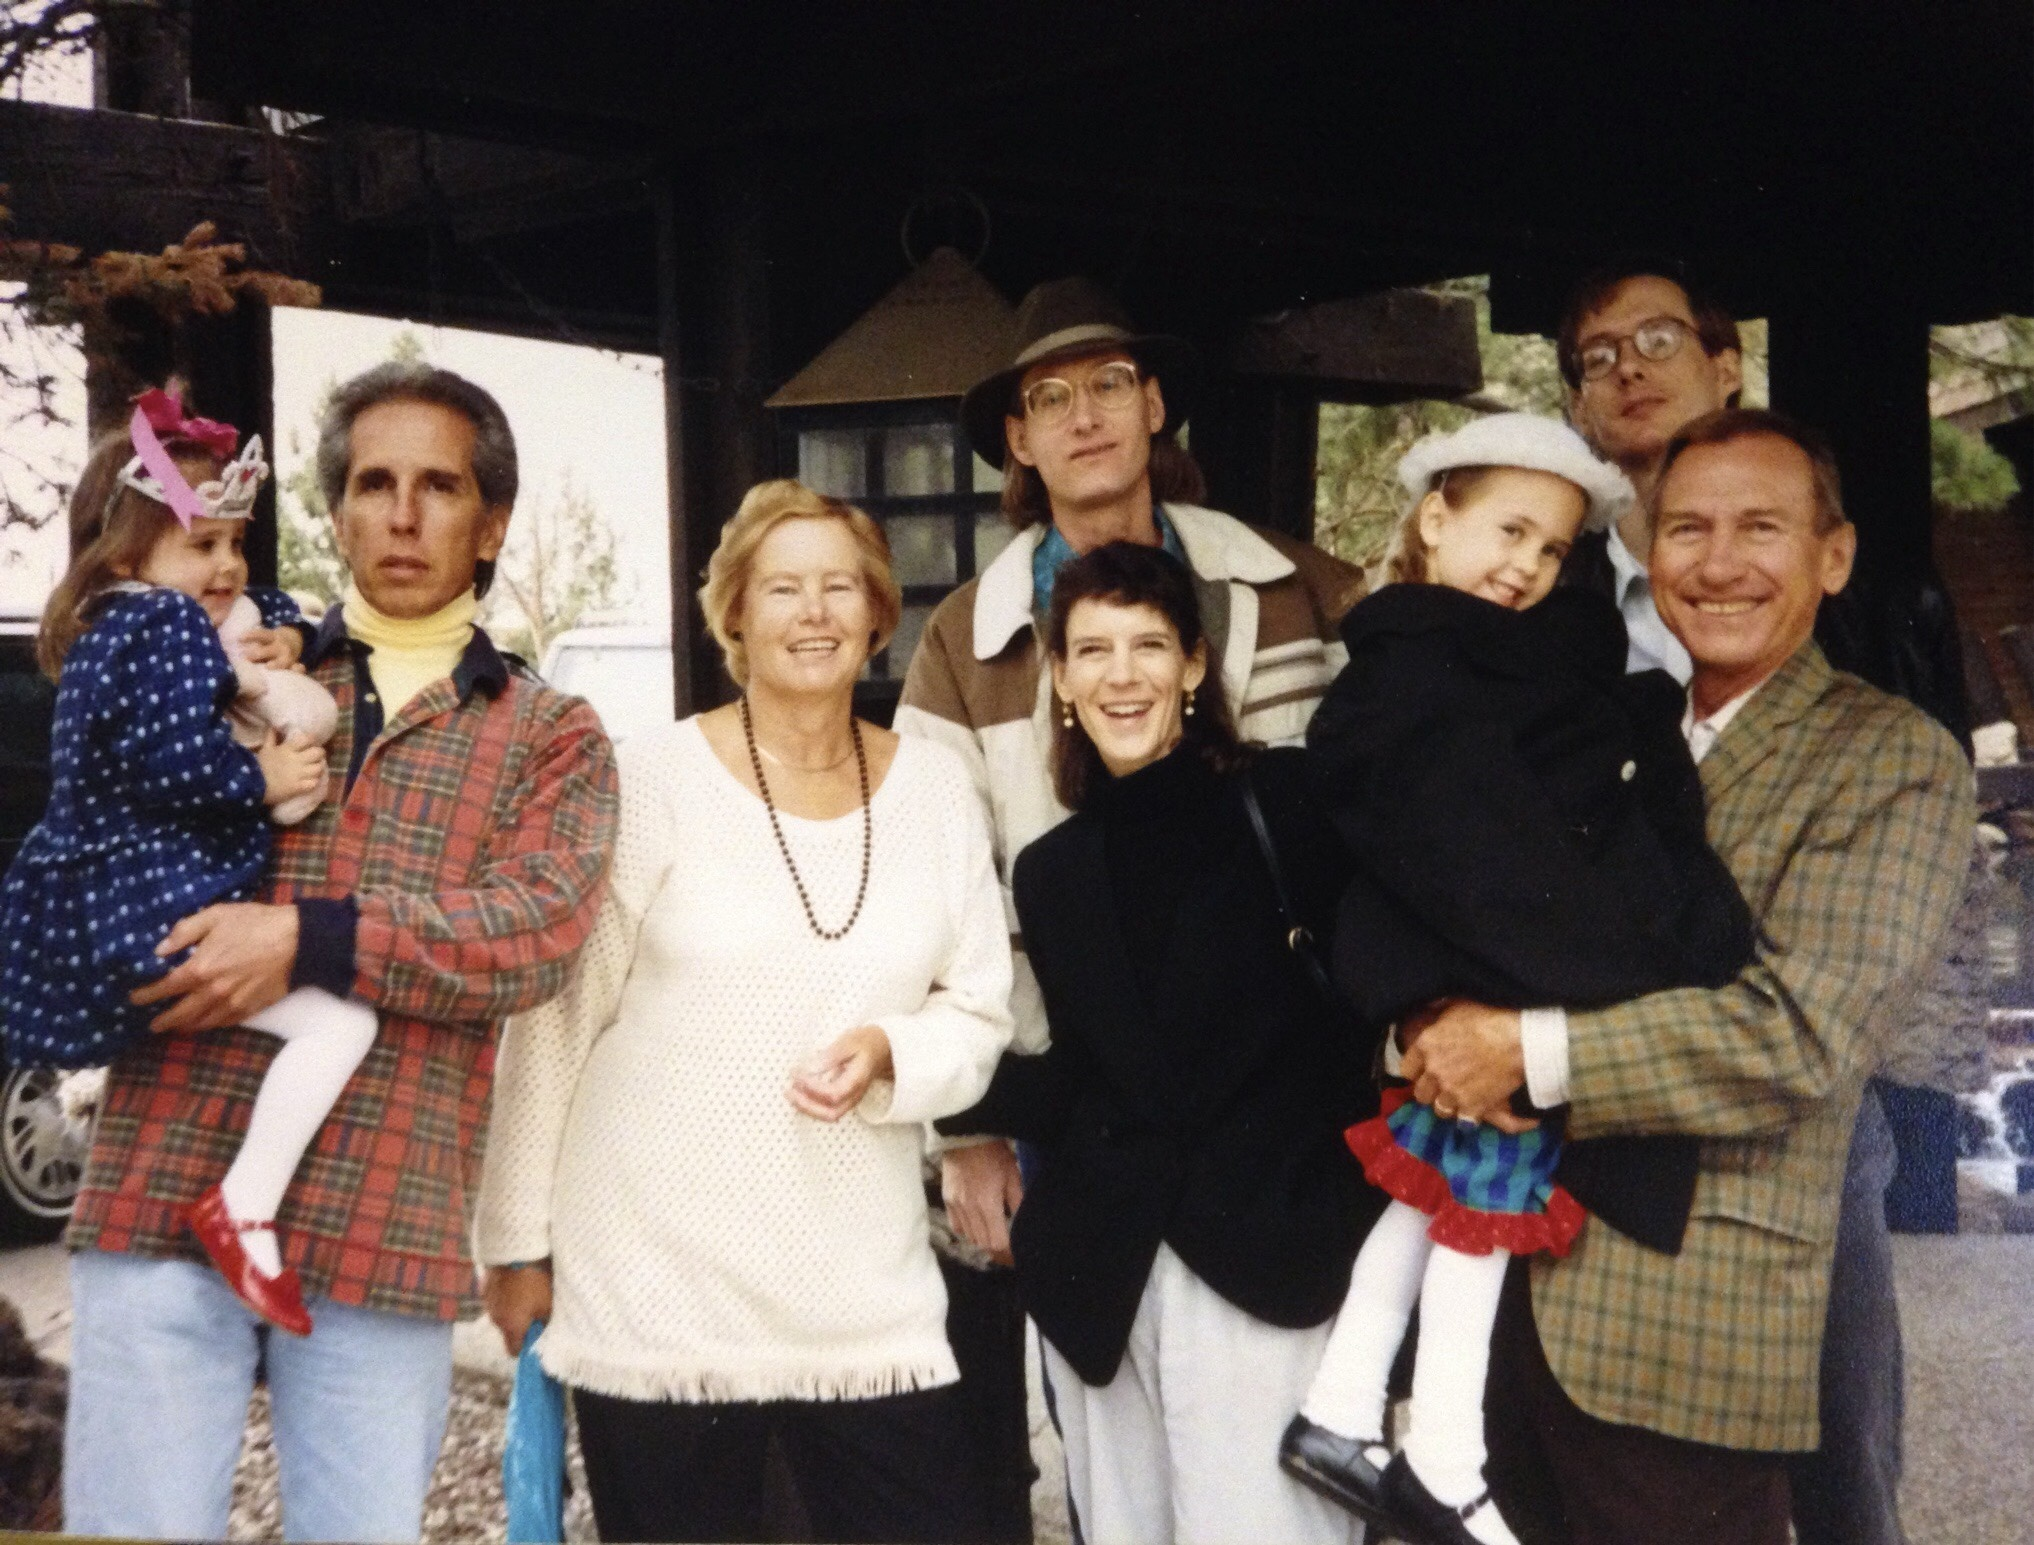 Lore and her family in the early 1990's.